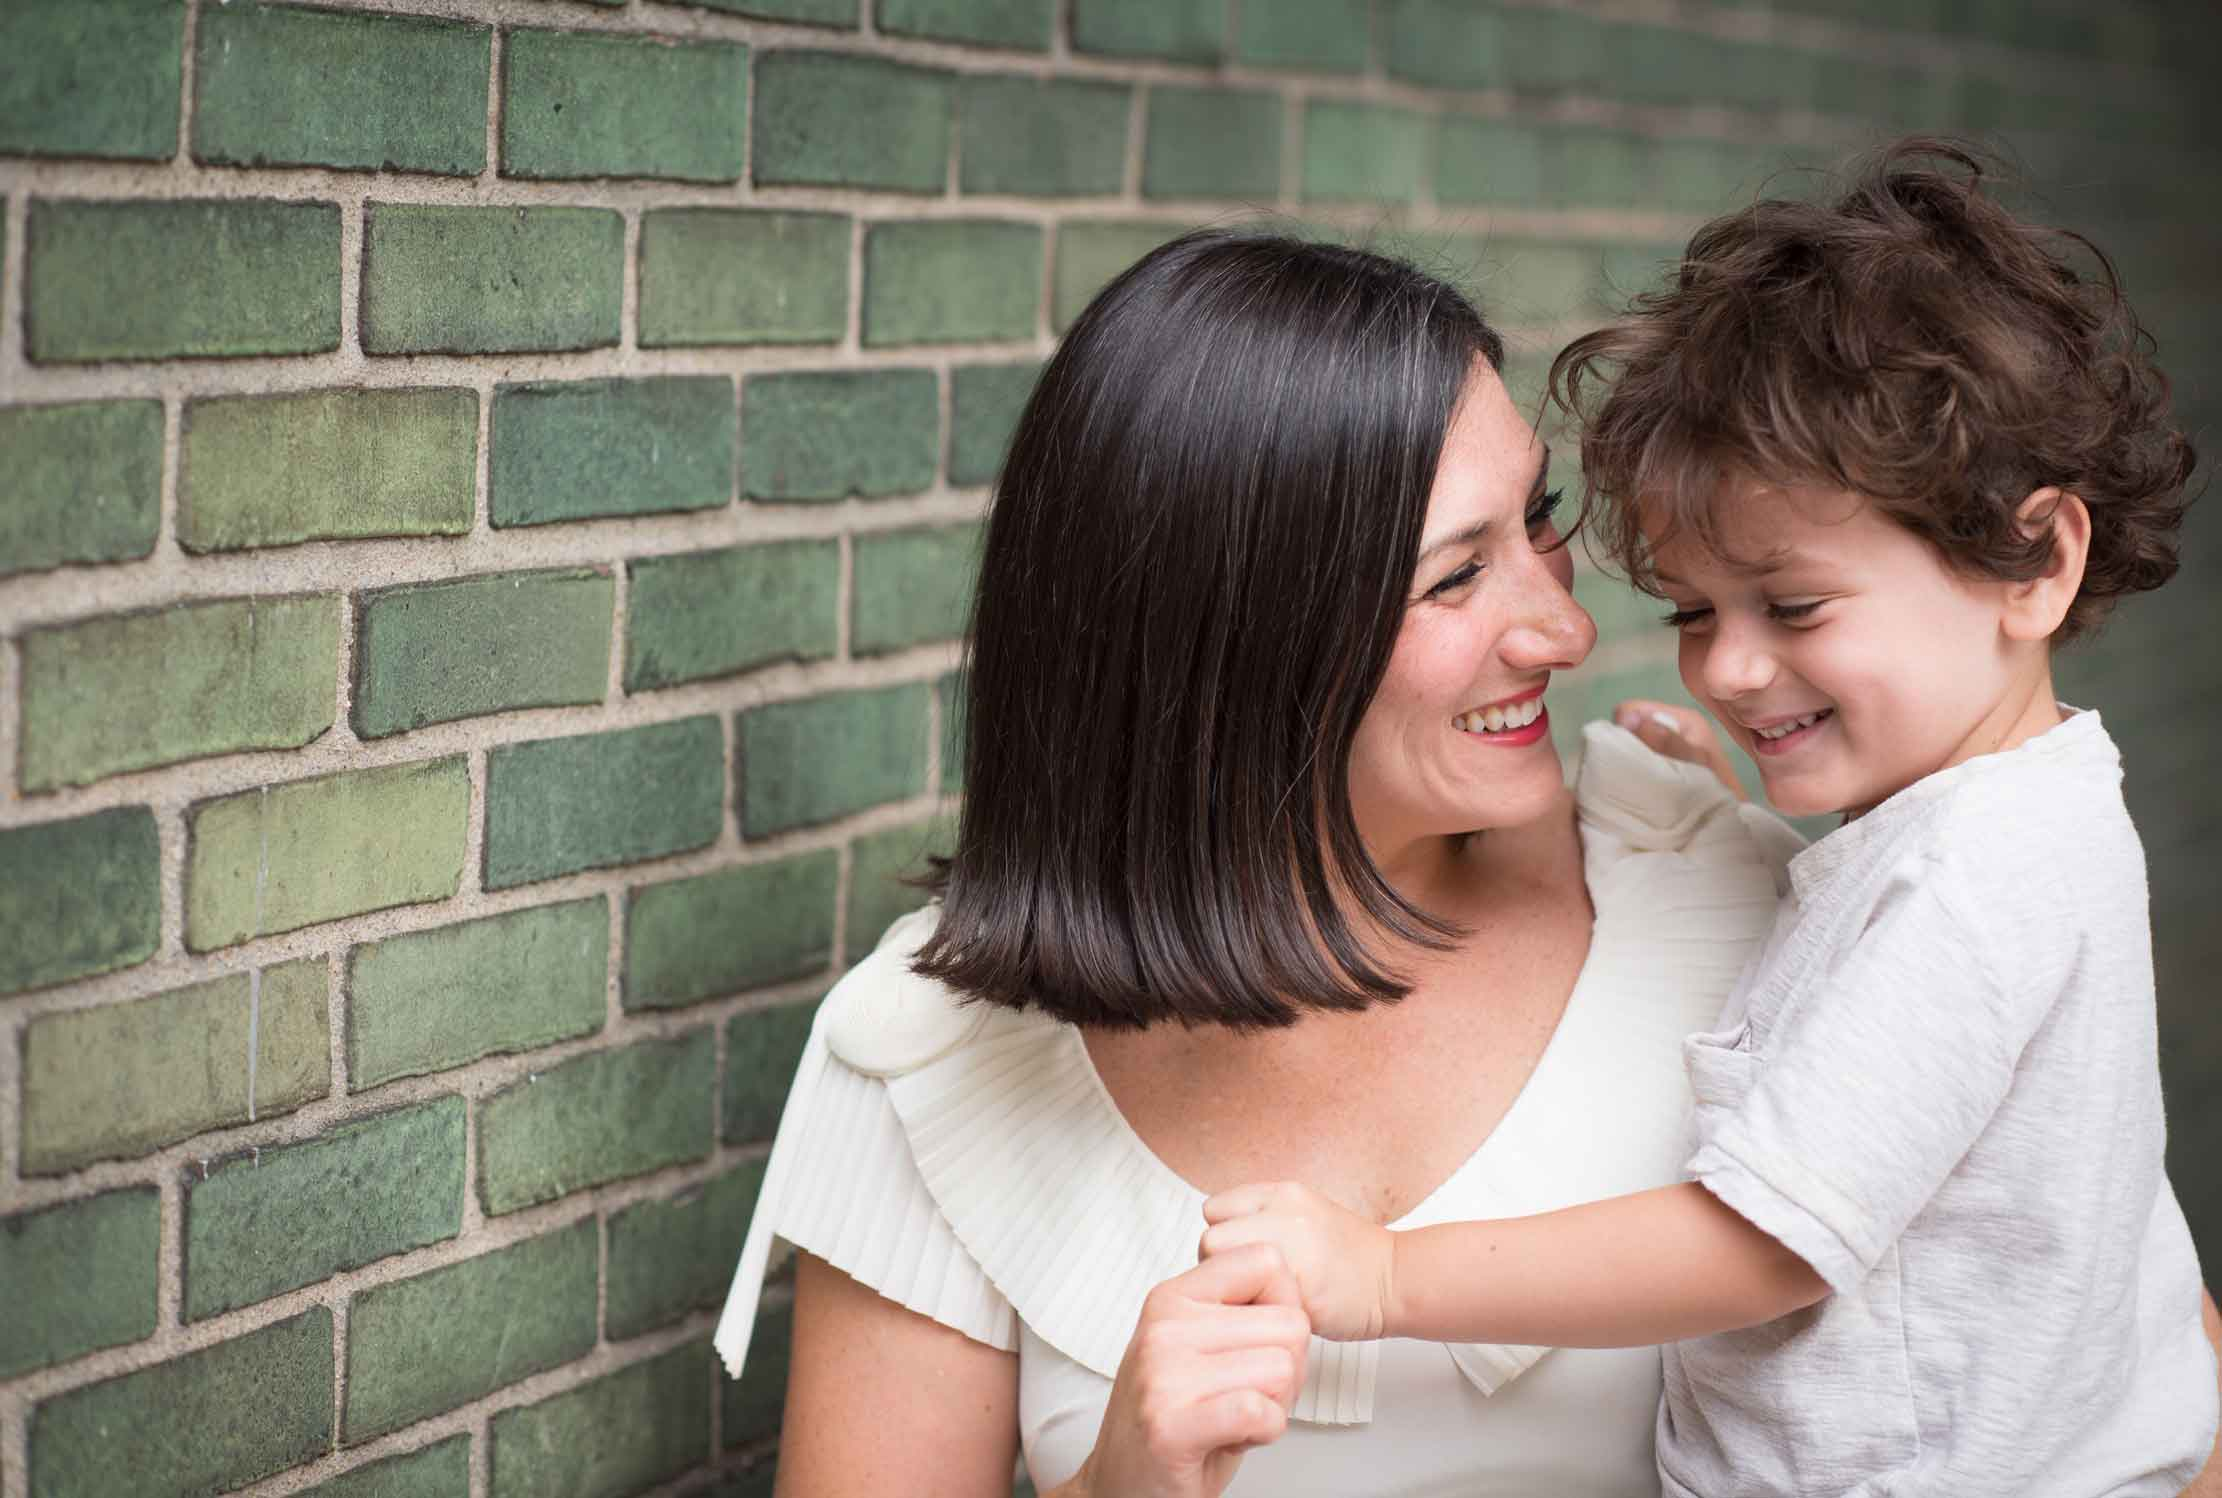 Ten Things We Learned About The Fifth Trimester From Our Podcast with Lauren Smith Brody